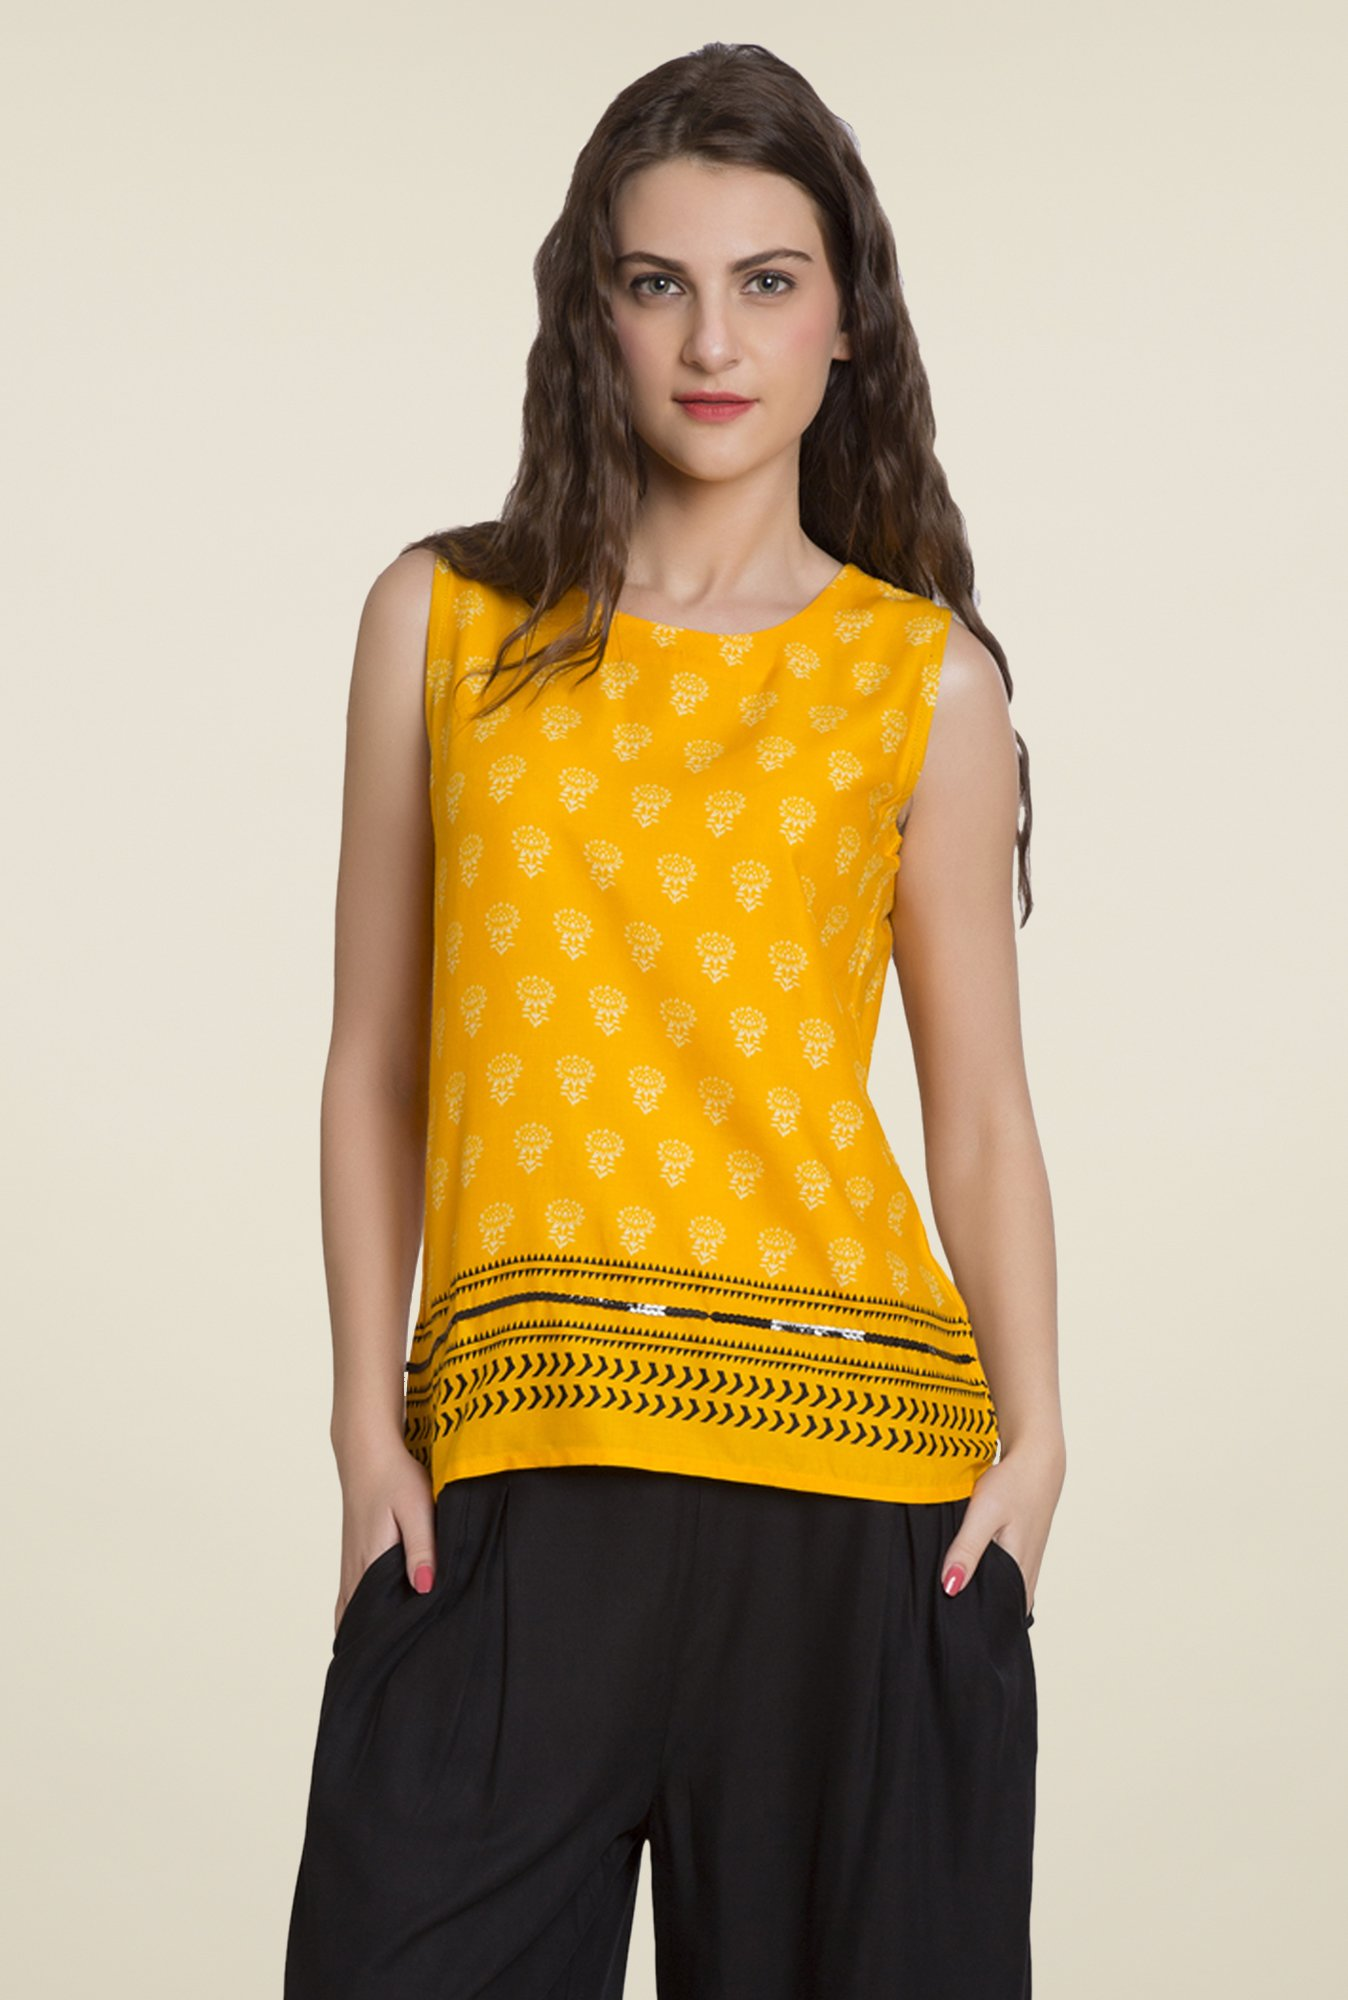 Desi Belle Yellow Printed Top